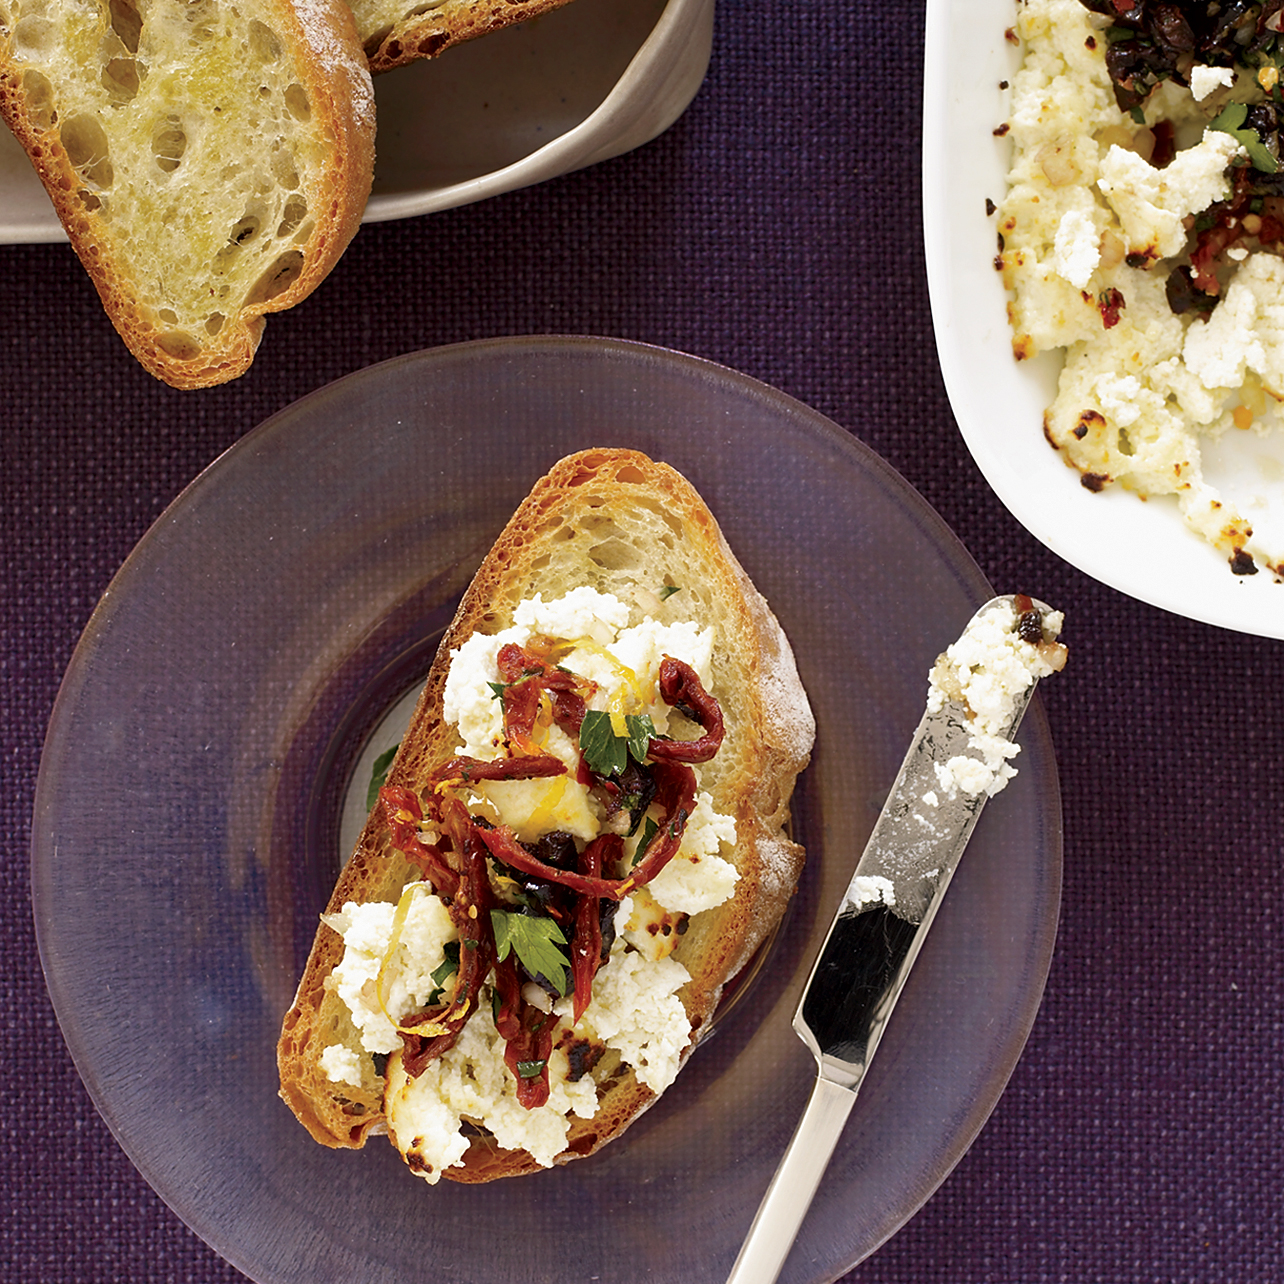 Broiled Ricotta with Olives and Sun-Dried-Tomato Relish